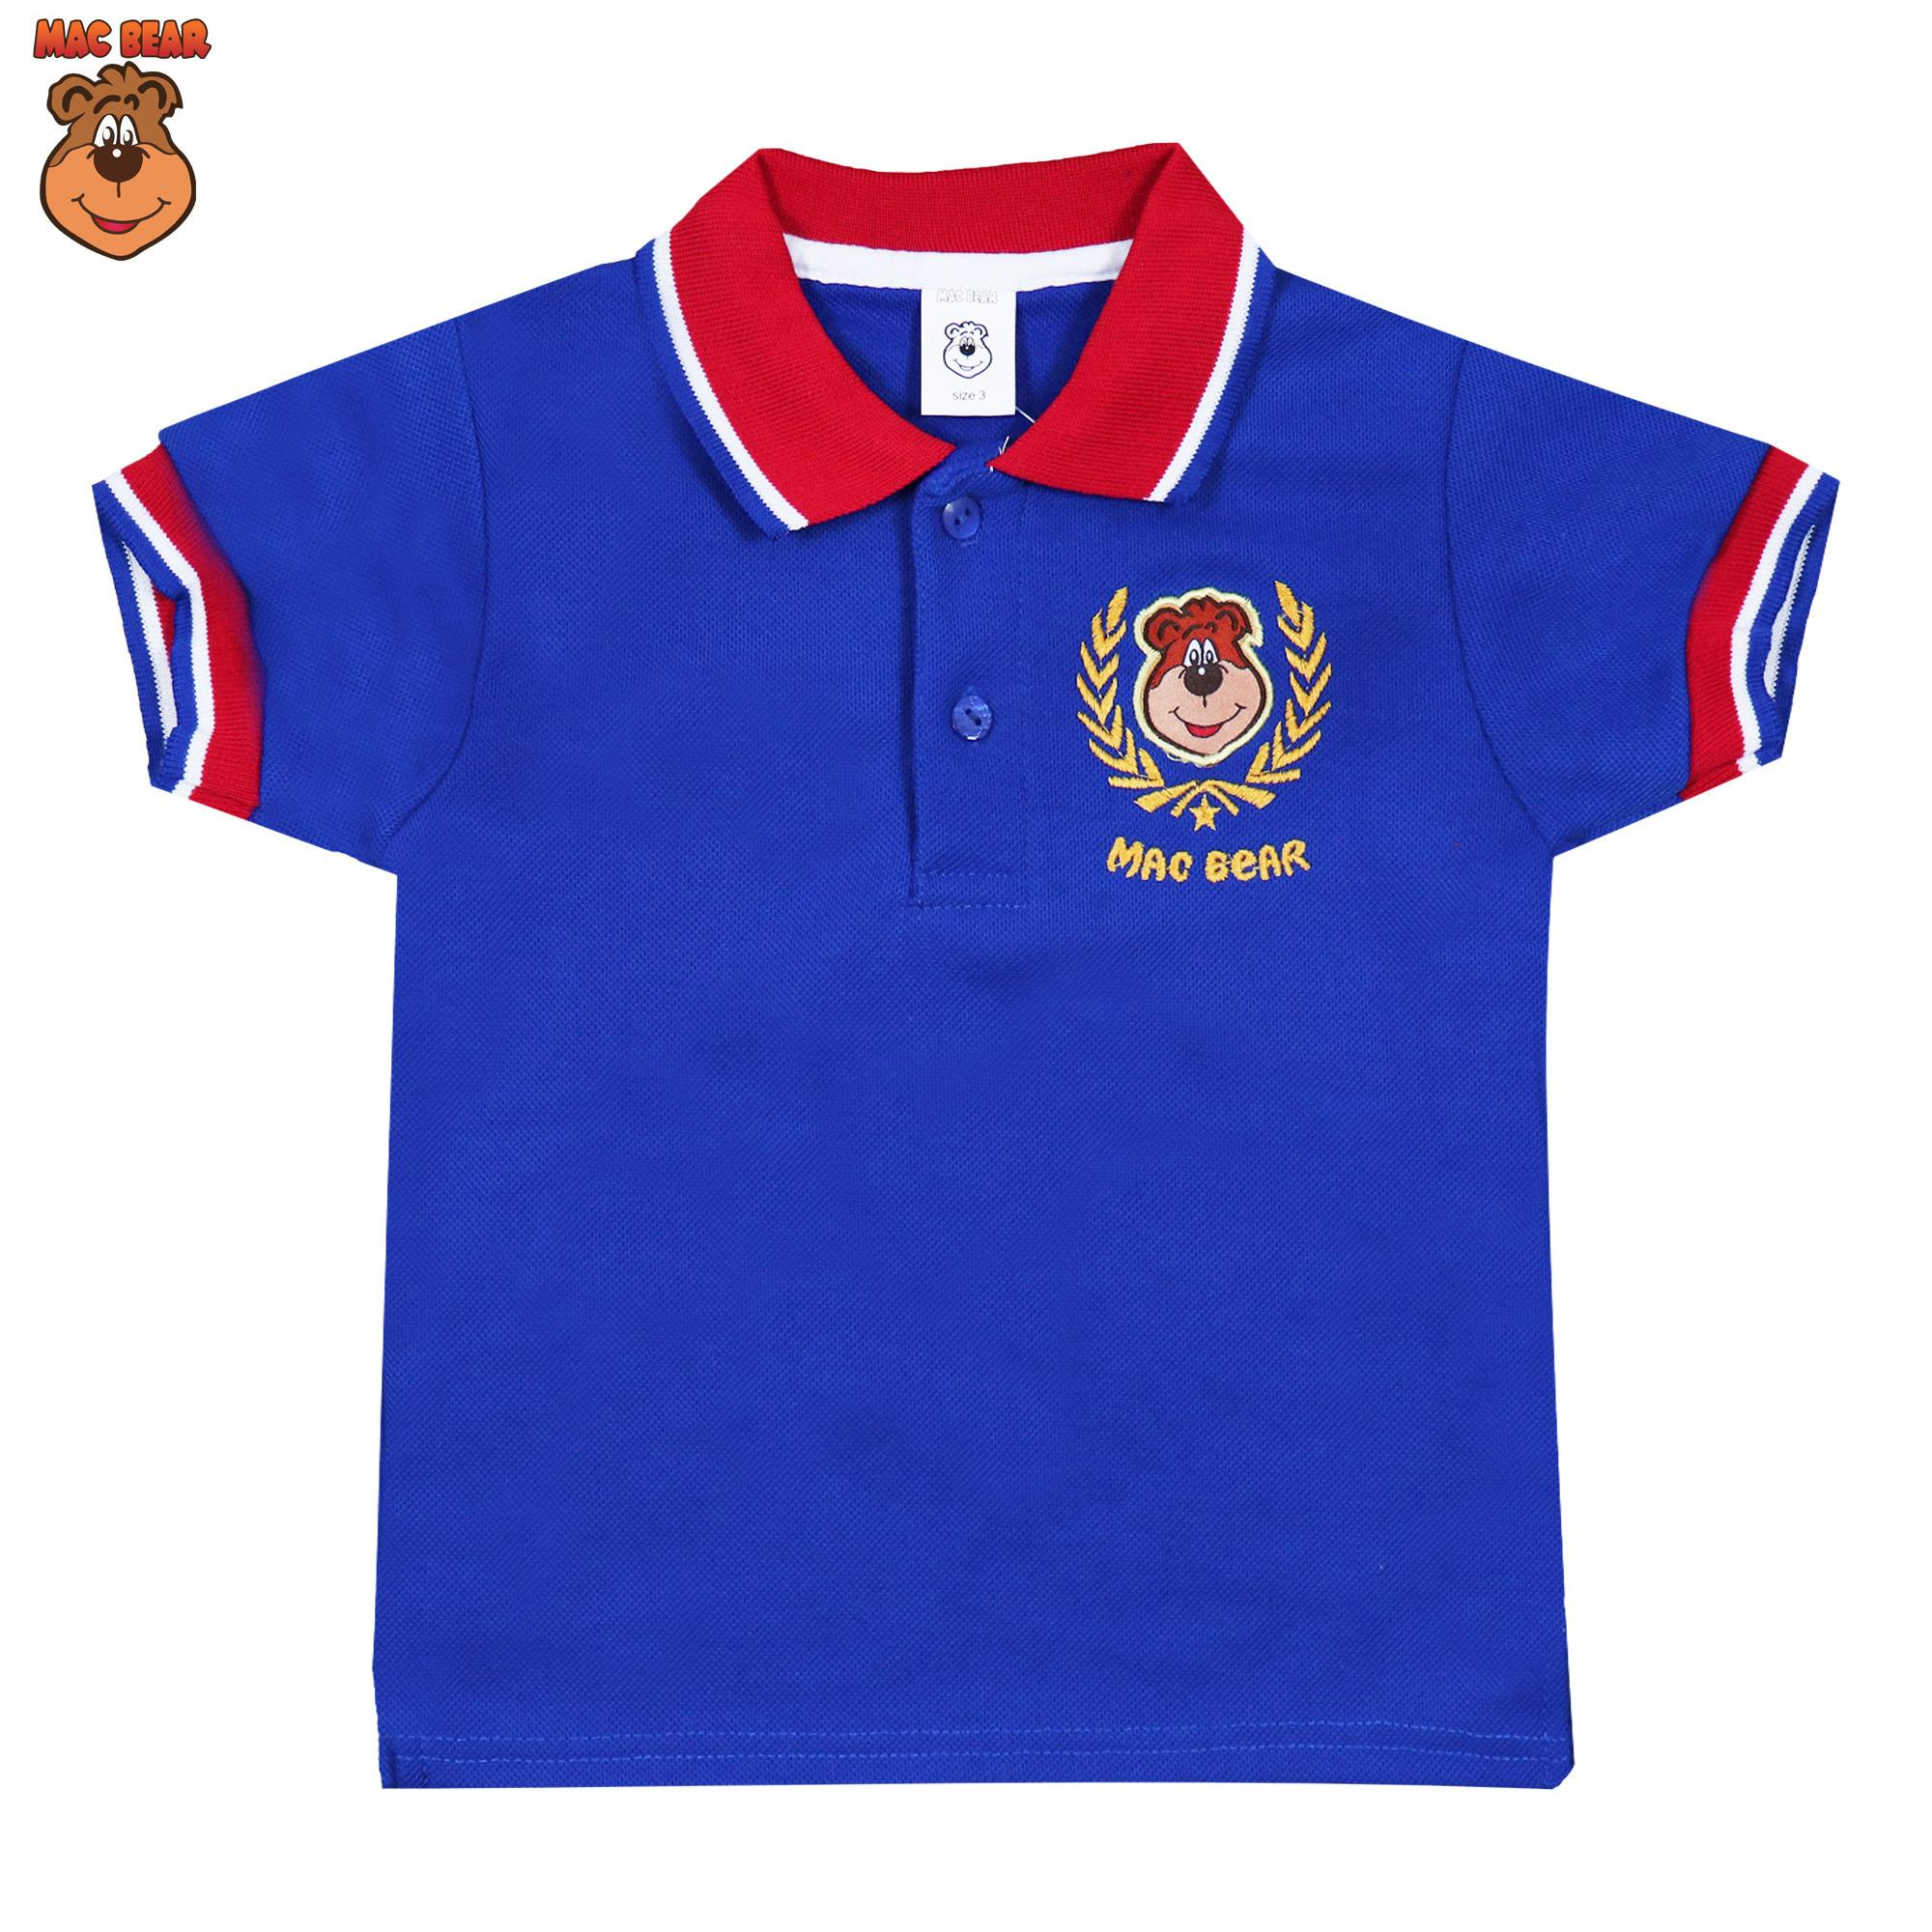 Macbear Baju Polo Anak M For White Stripes On Red Size 3 De5 1805 Junior Kemeja Lengan Panjang Stars Blue 8 Biru Kids Atasan Hello Macperry